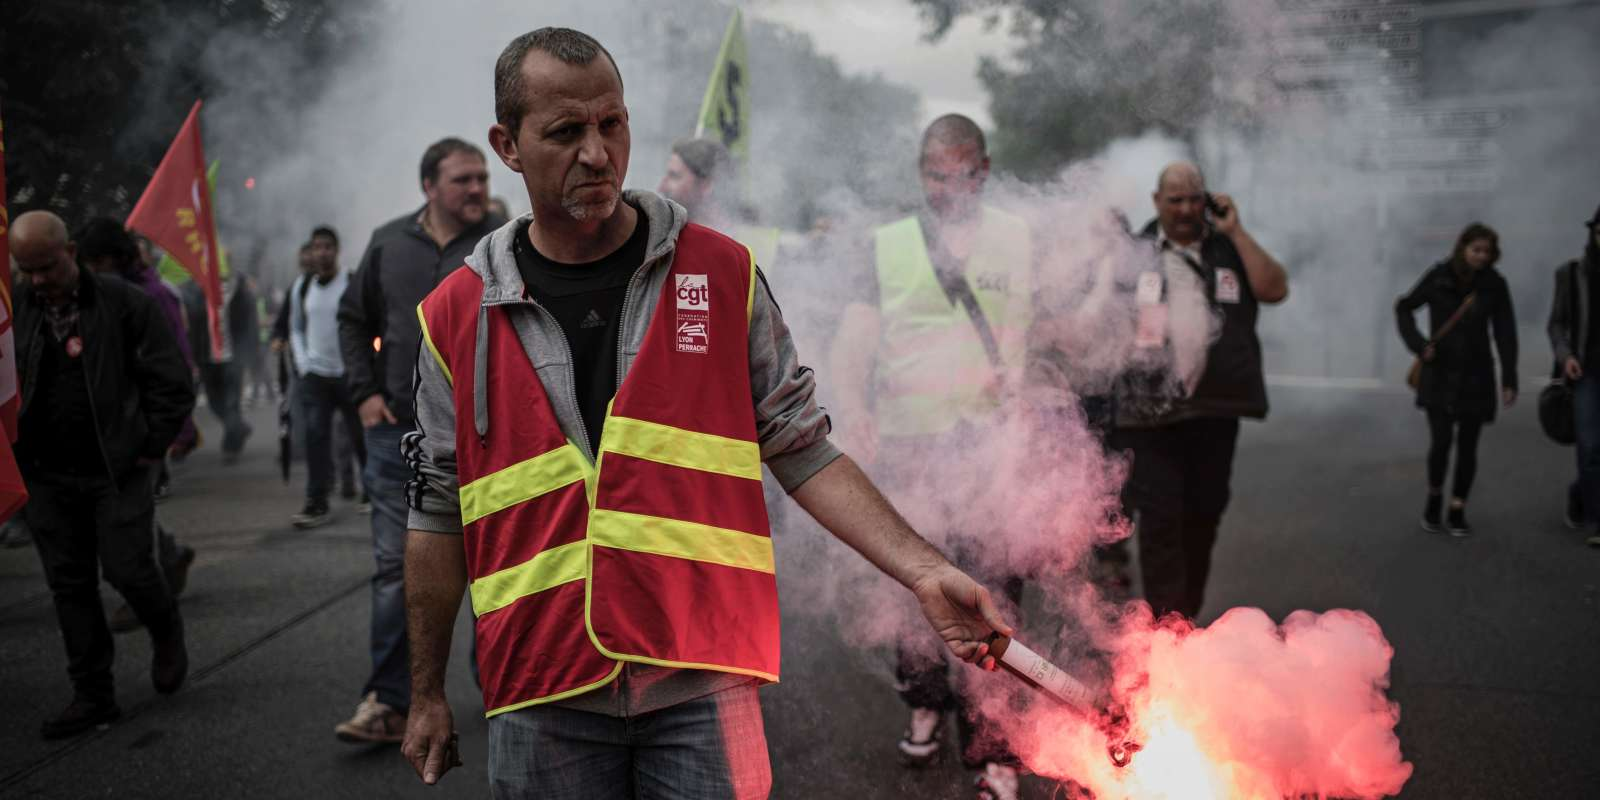 Striking employees of the French state-owned rail operator SNCF demonstrate in front of the MEDEF's (French employers' association) branch in Lyon on June 1, 2016 during a strike to protest against government labour reforms. Transport chaos hit France on June 1, just nine days before the Euro 2016 football tournament, as railway workers went on strike in the latest salvo of a months-long battle between the government and unions. / AFP / JEFF PACHOUD